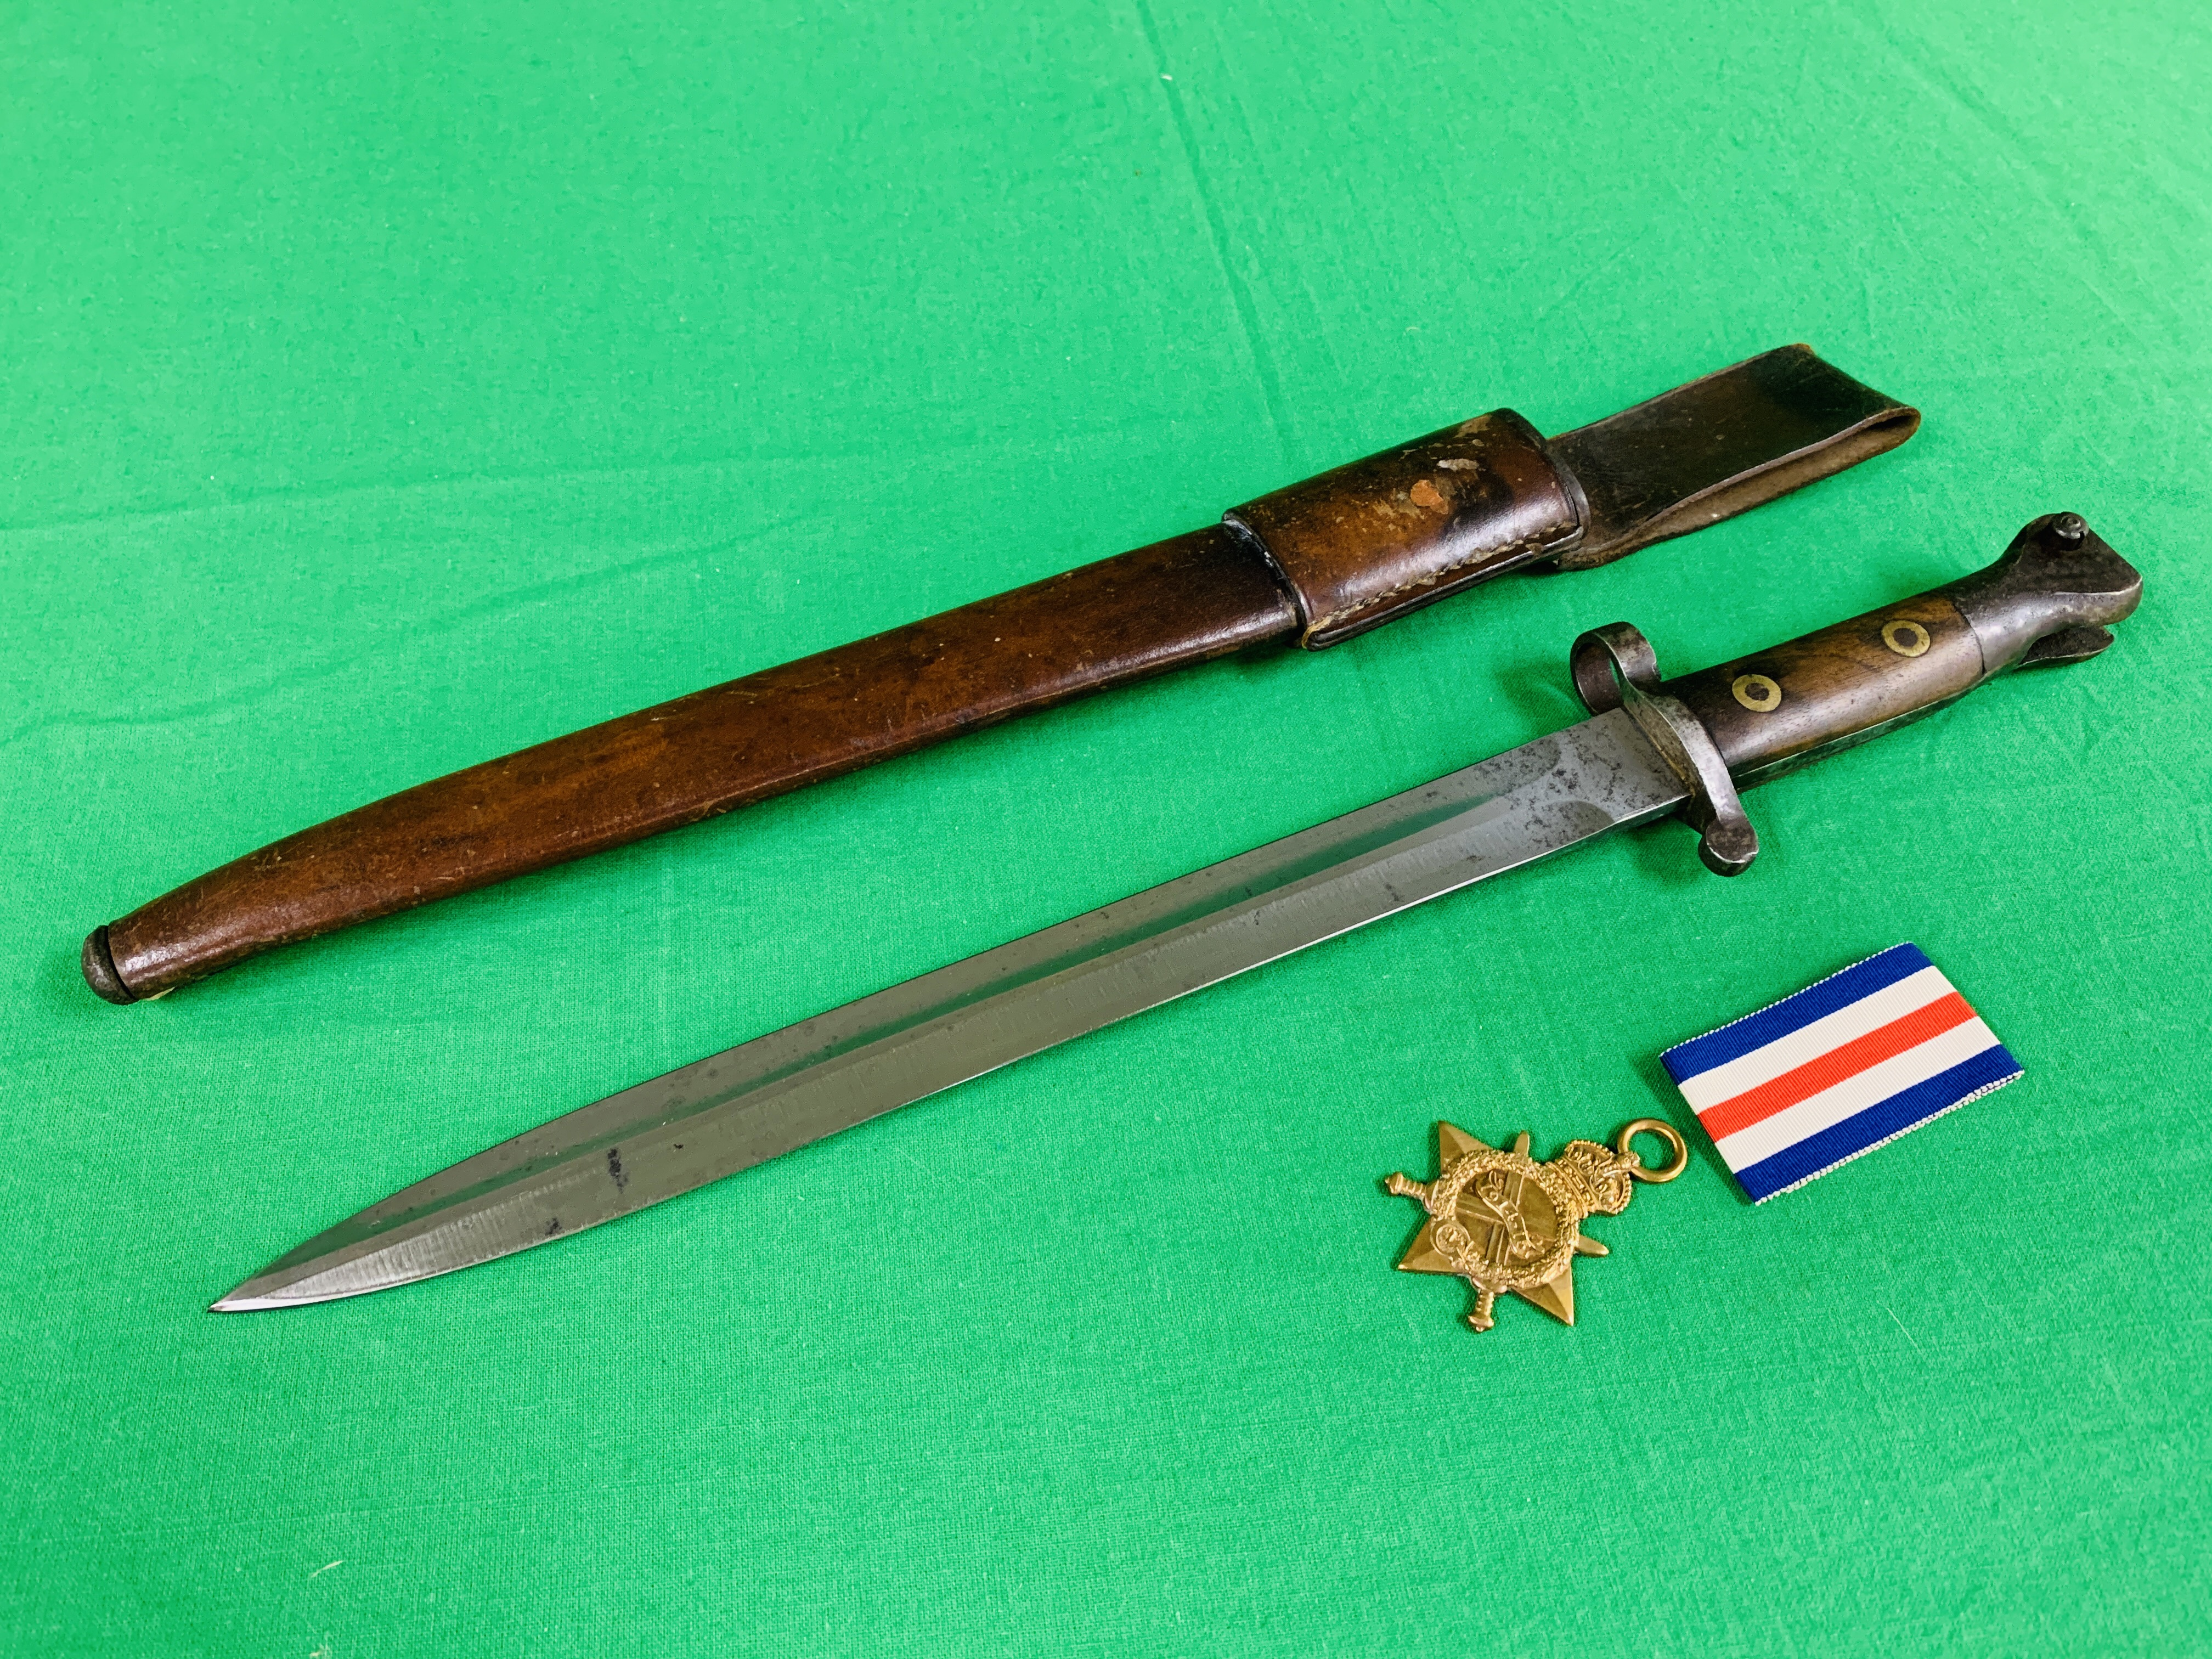 A VICTORIAN BAYONET FOR LEE ENFIELD RIFLE WITH A MK3 NAVAL LEATHER SCABBARD ALONG WITH THE RELATING